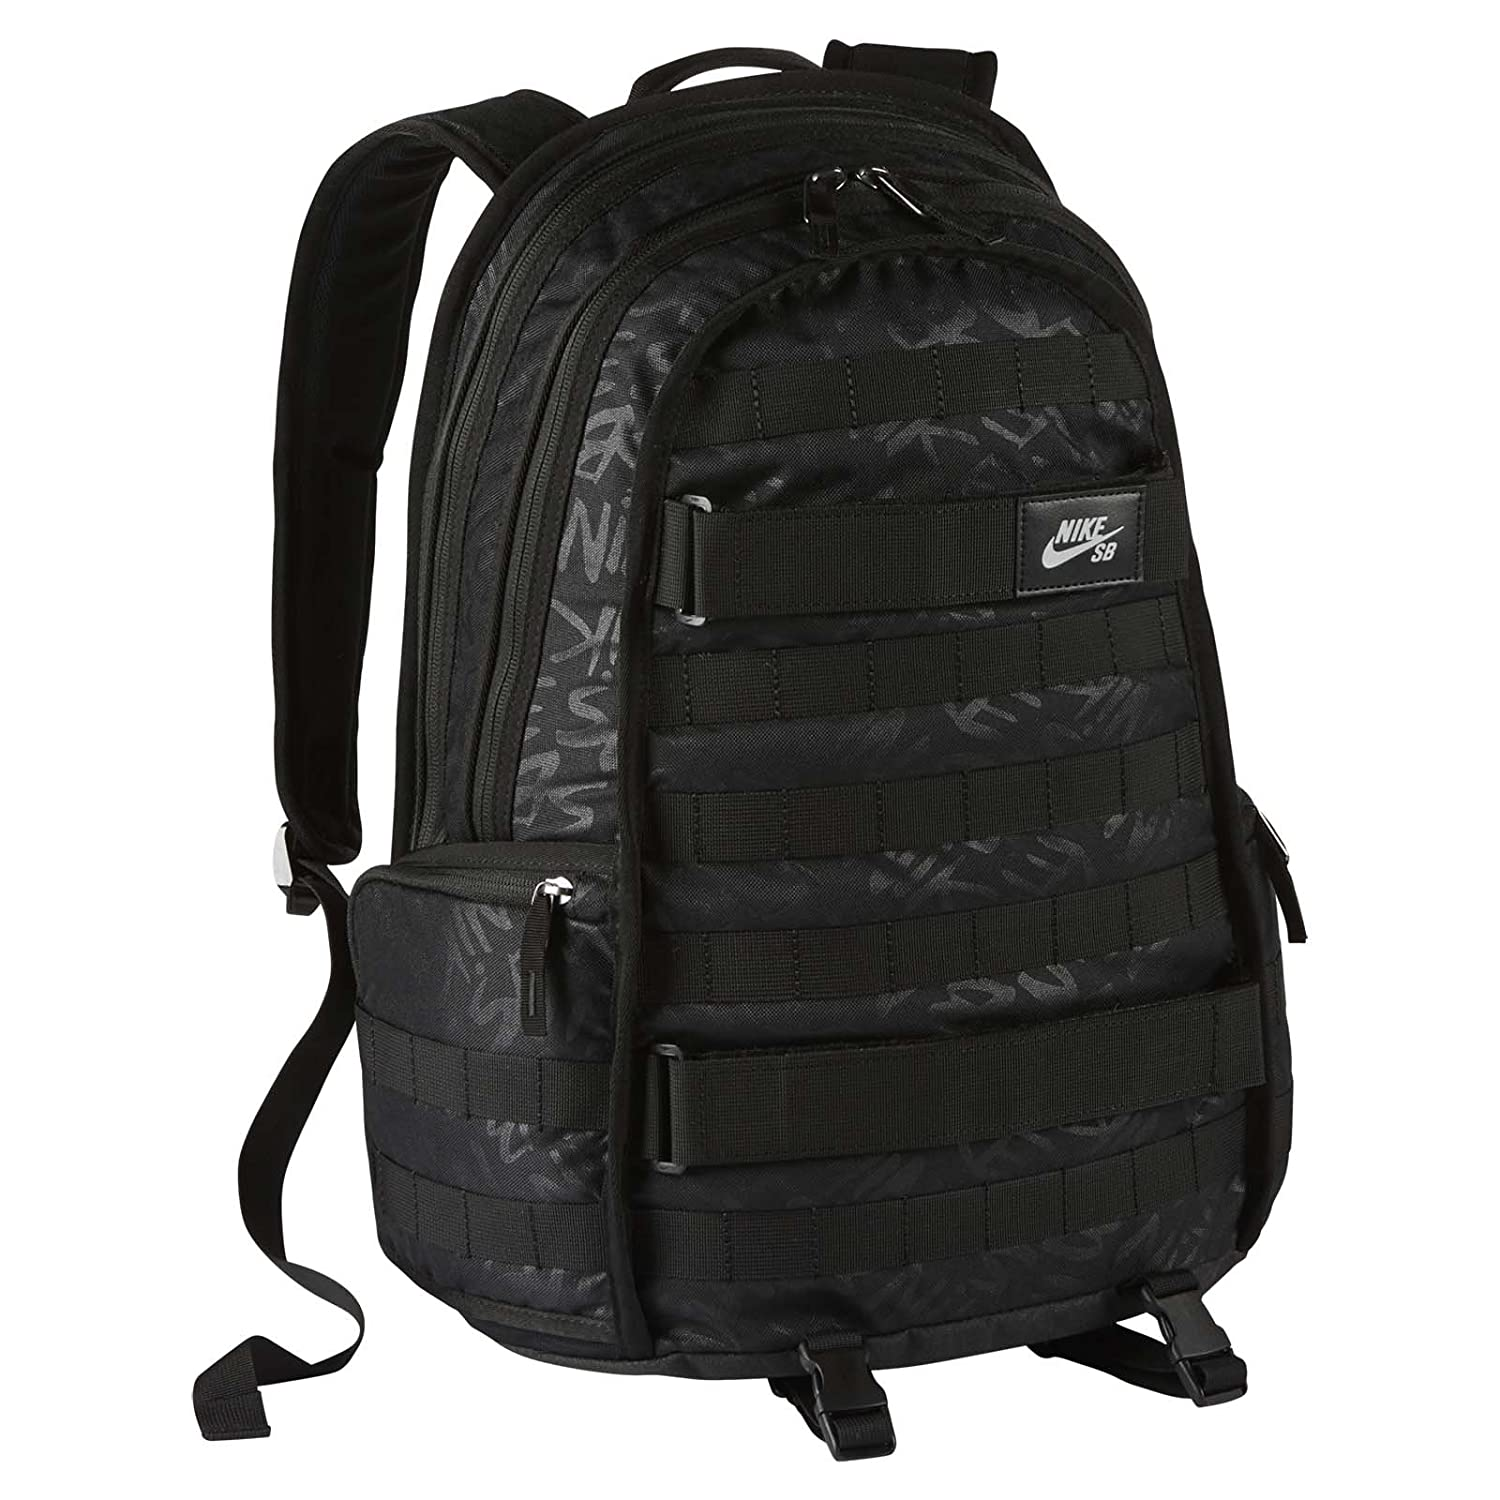 Nike SB RPM Graphic Skateboarding Backpack BlackBlack